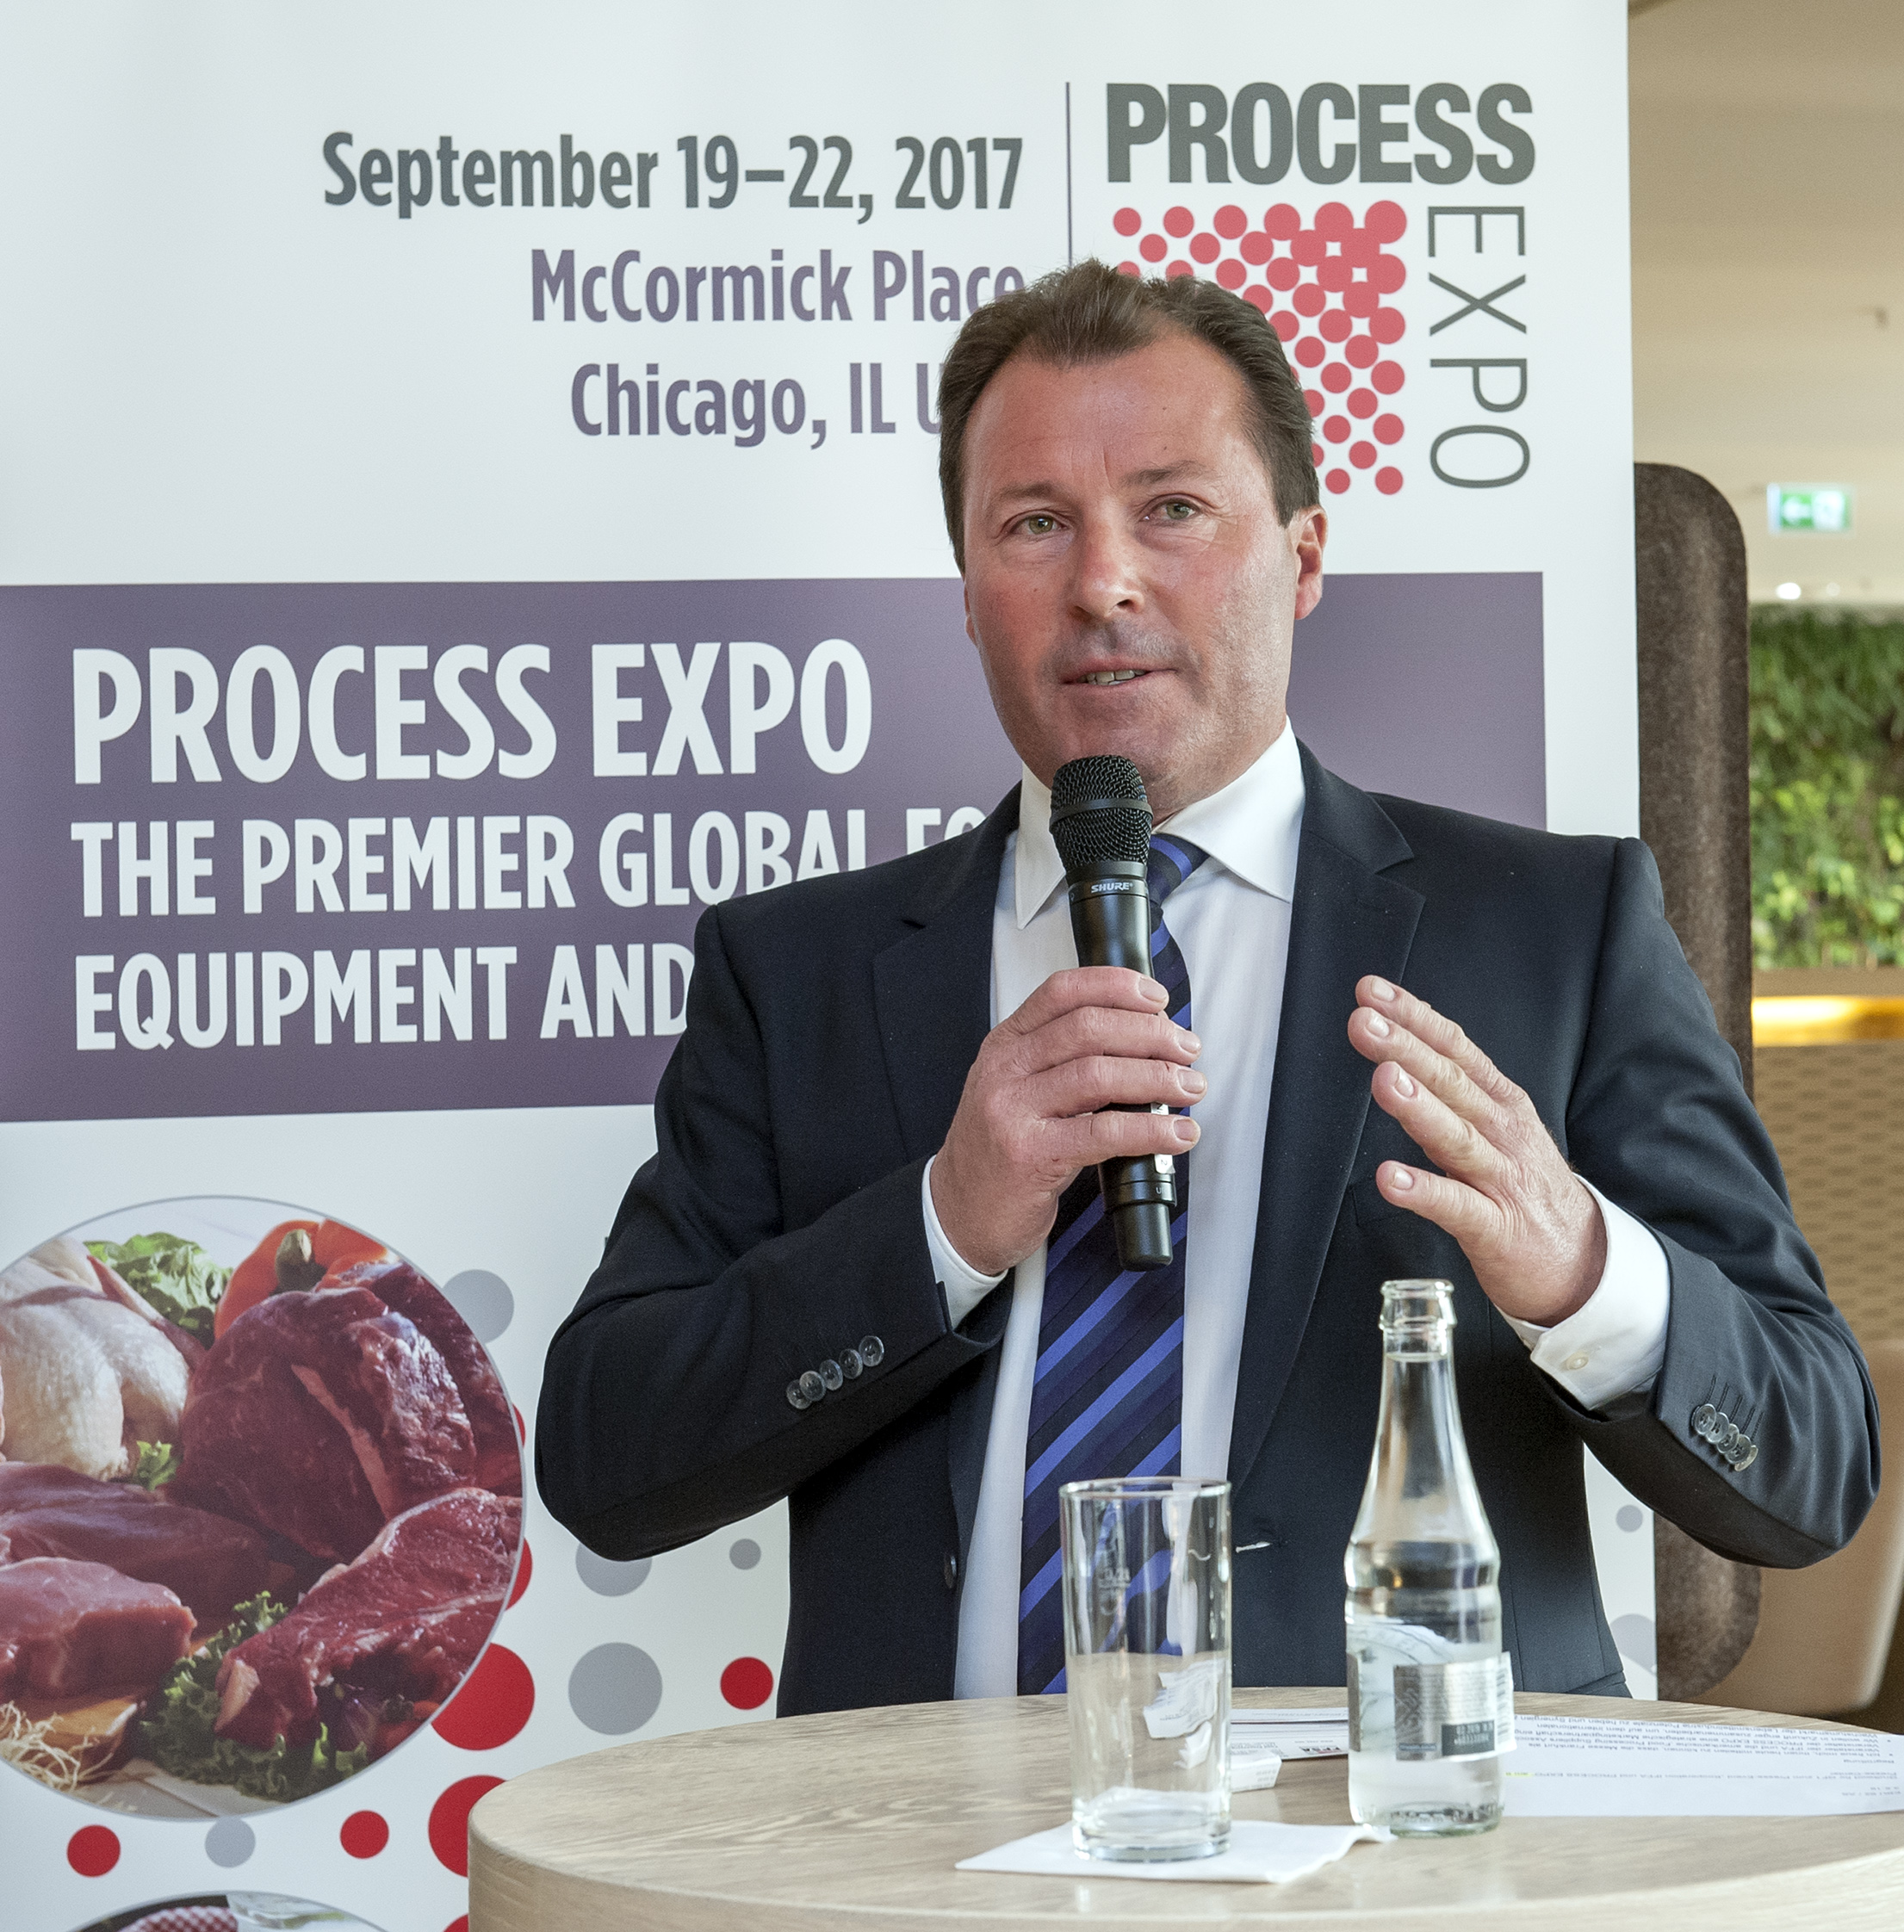 Process Expo: Wolfgang Marzin (President and Chief Executive Officer (CEO) of Messe Frankfurt GmbH)